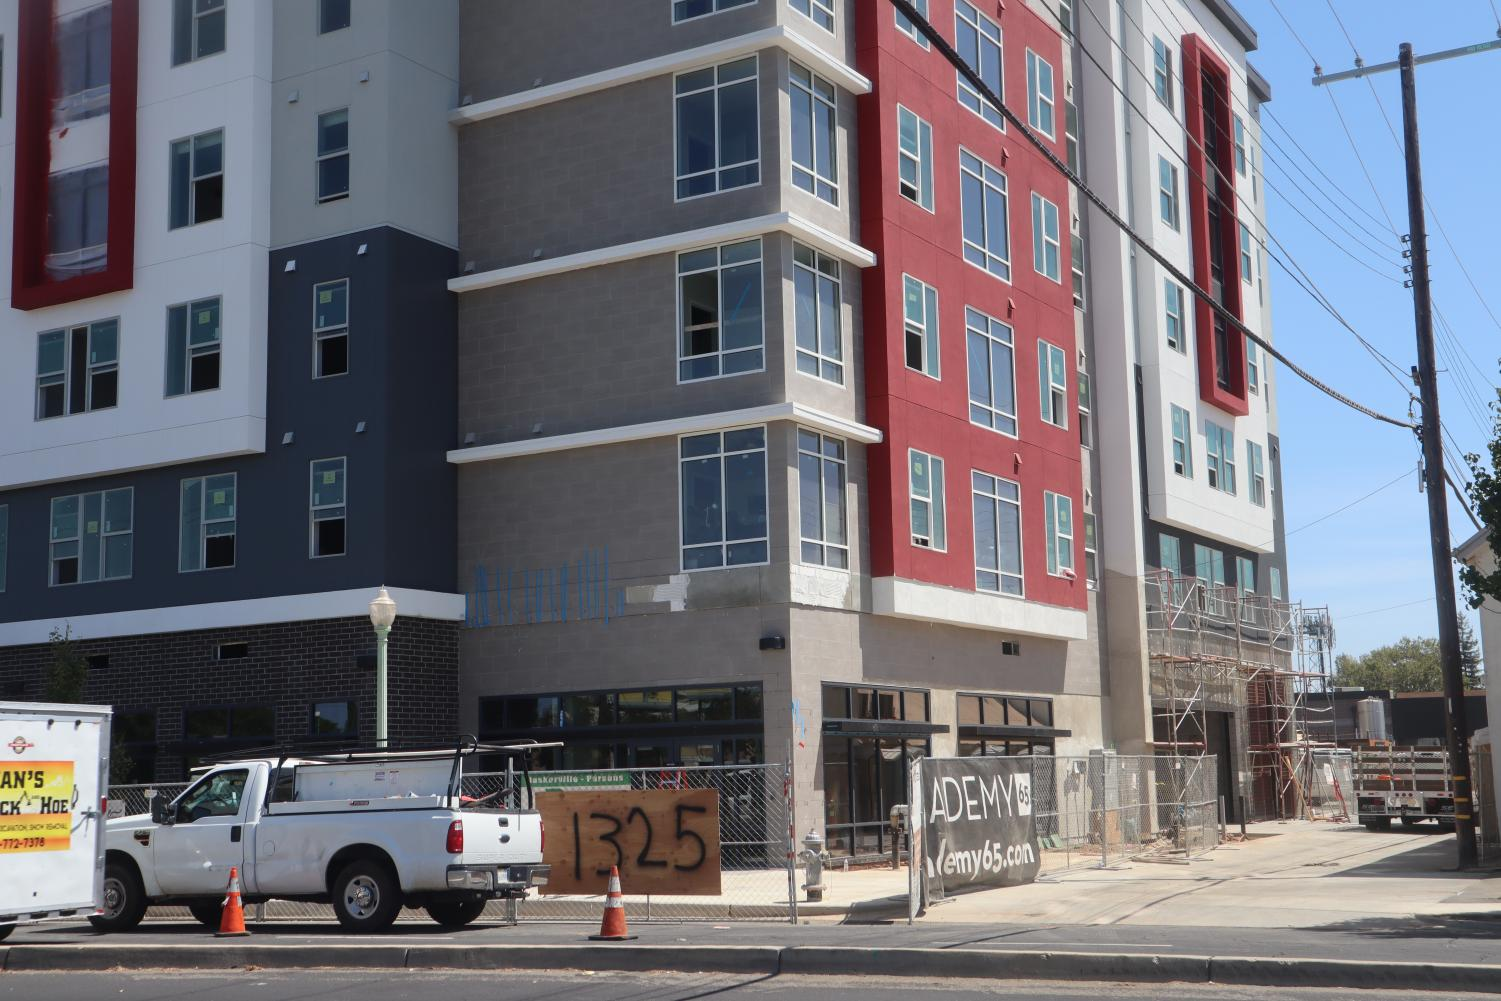 Construction at Academy65. The apartment complex's delay is irresponsible.